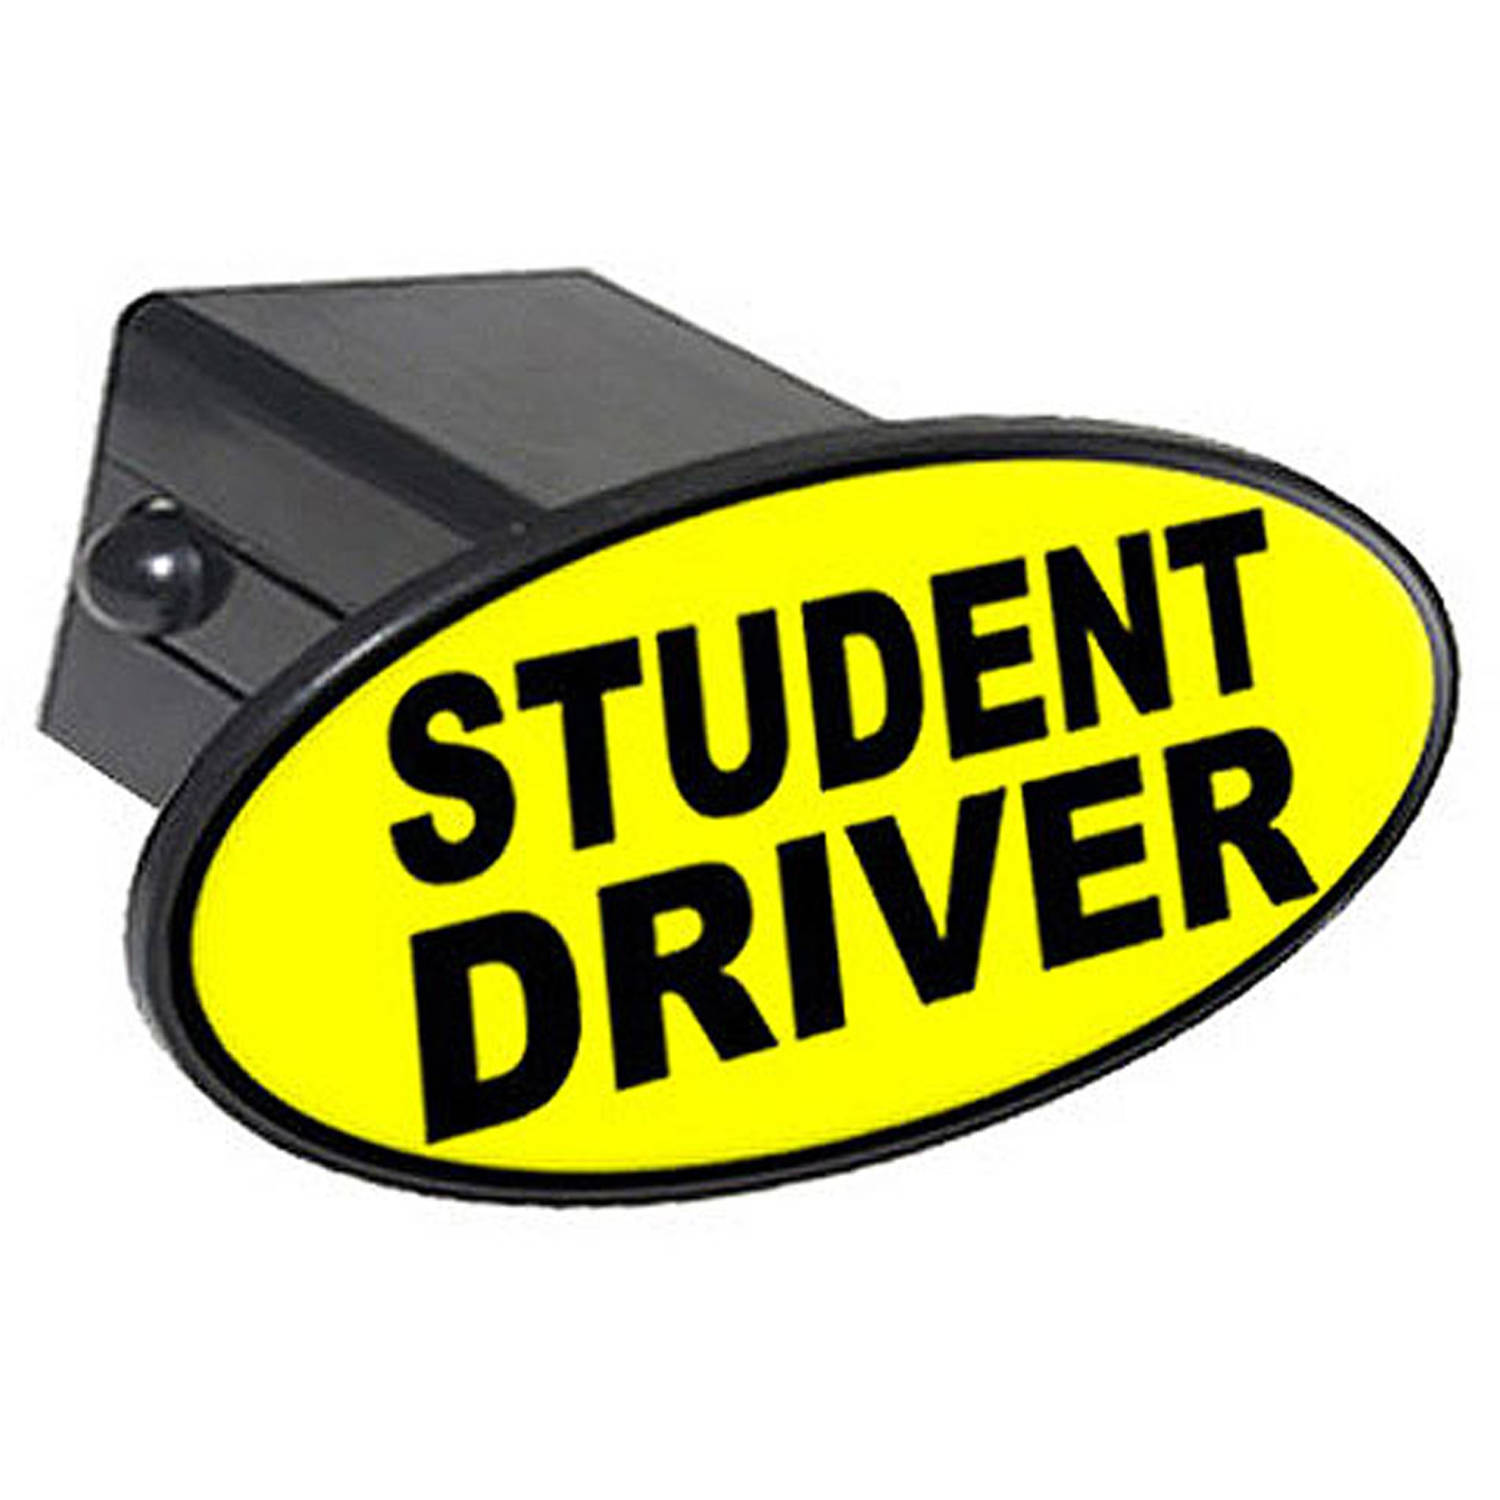 "Student Driver - Yellow 2"" Oval Tow Trailer Hitch Cover Plug Insert"